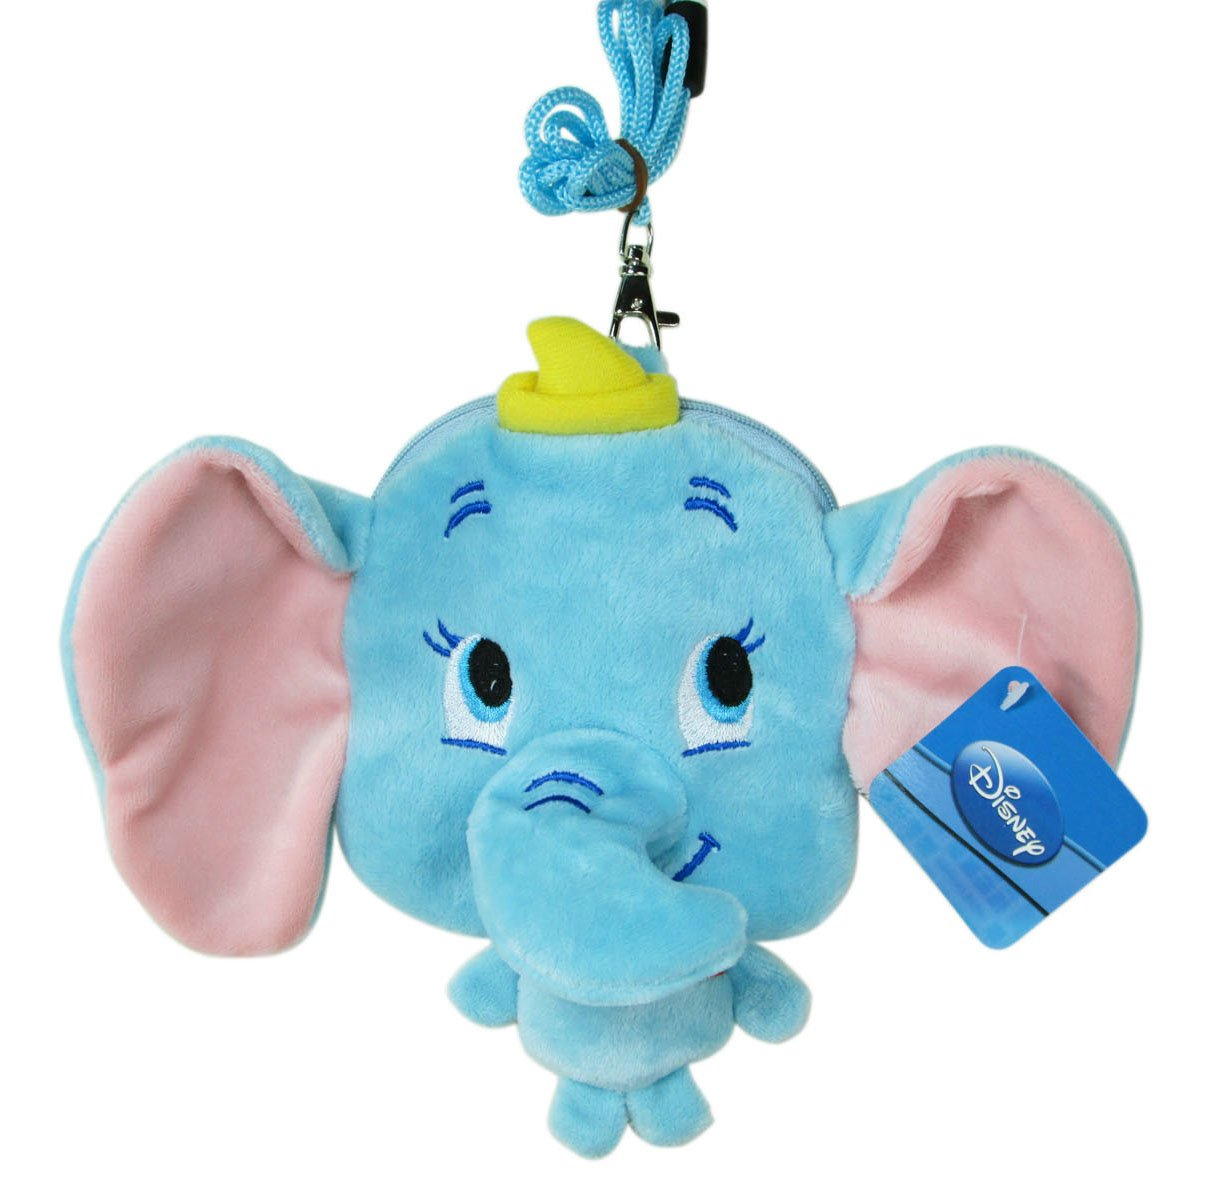 Dumbo ID Holder and Coin Purse - Theme Park Pass Holder